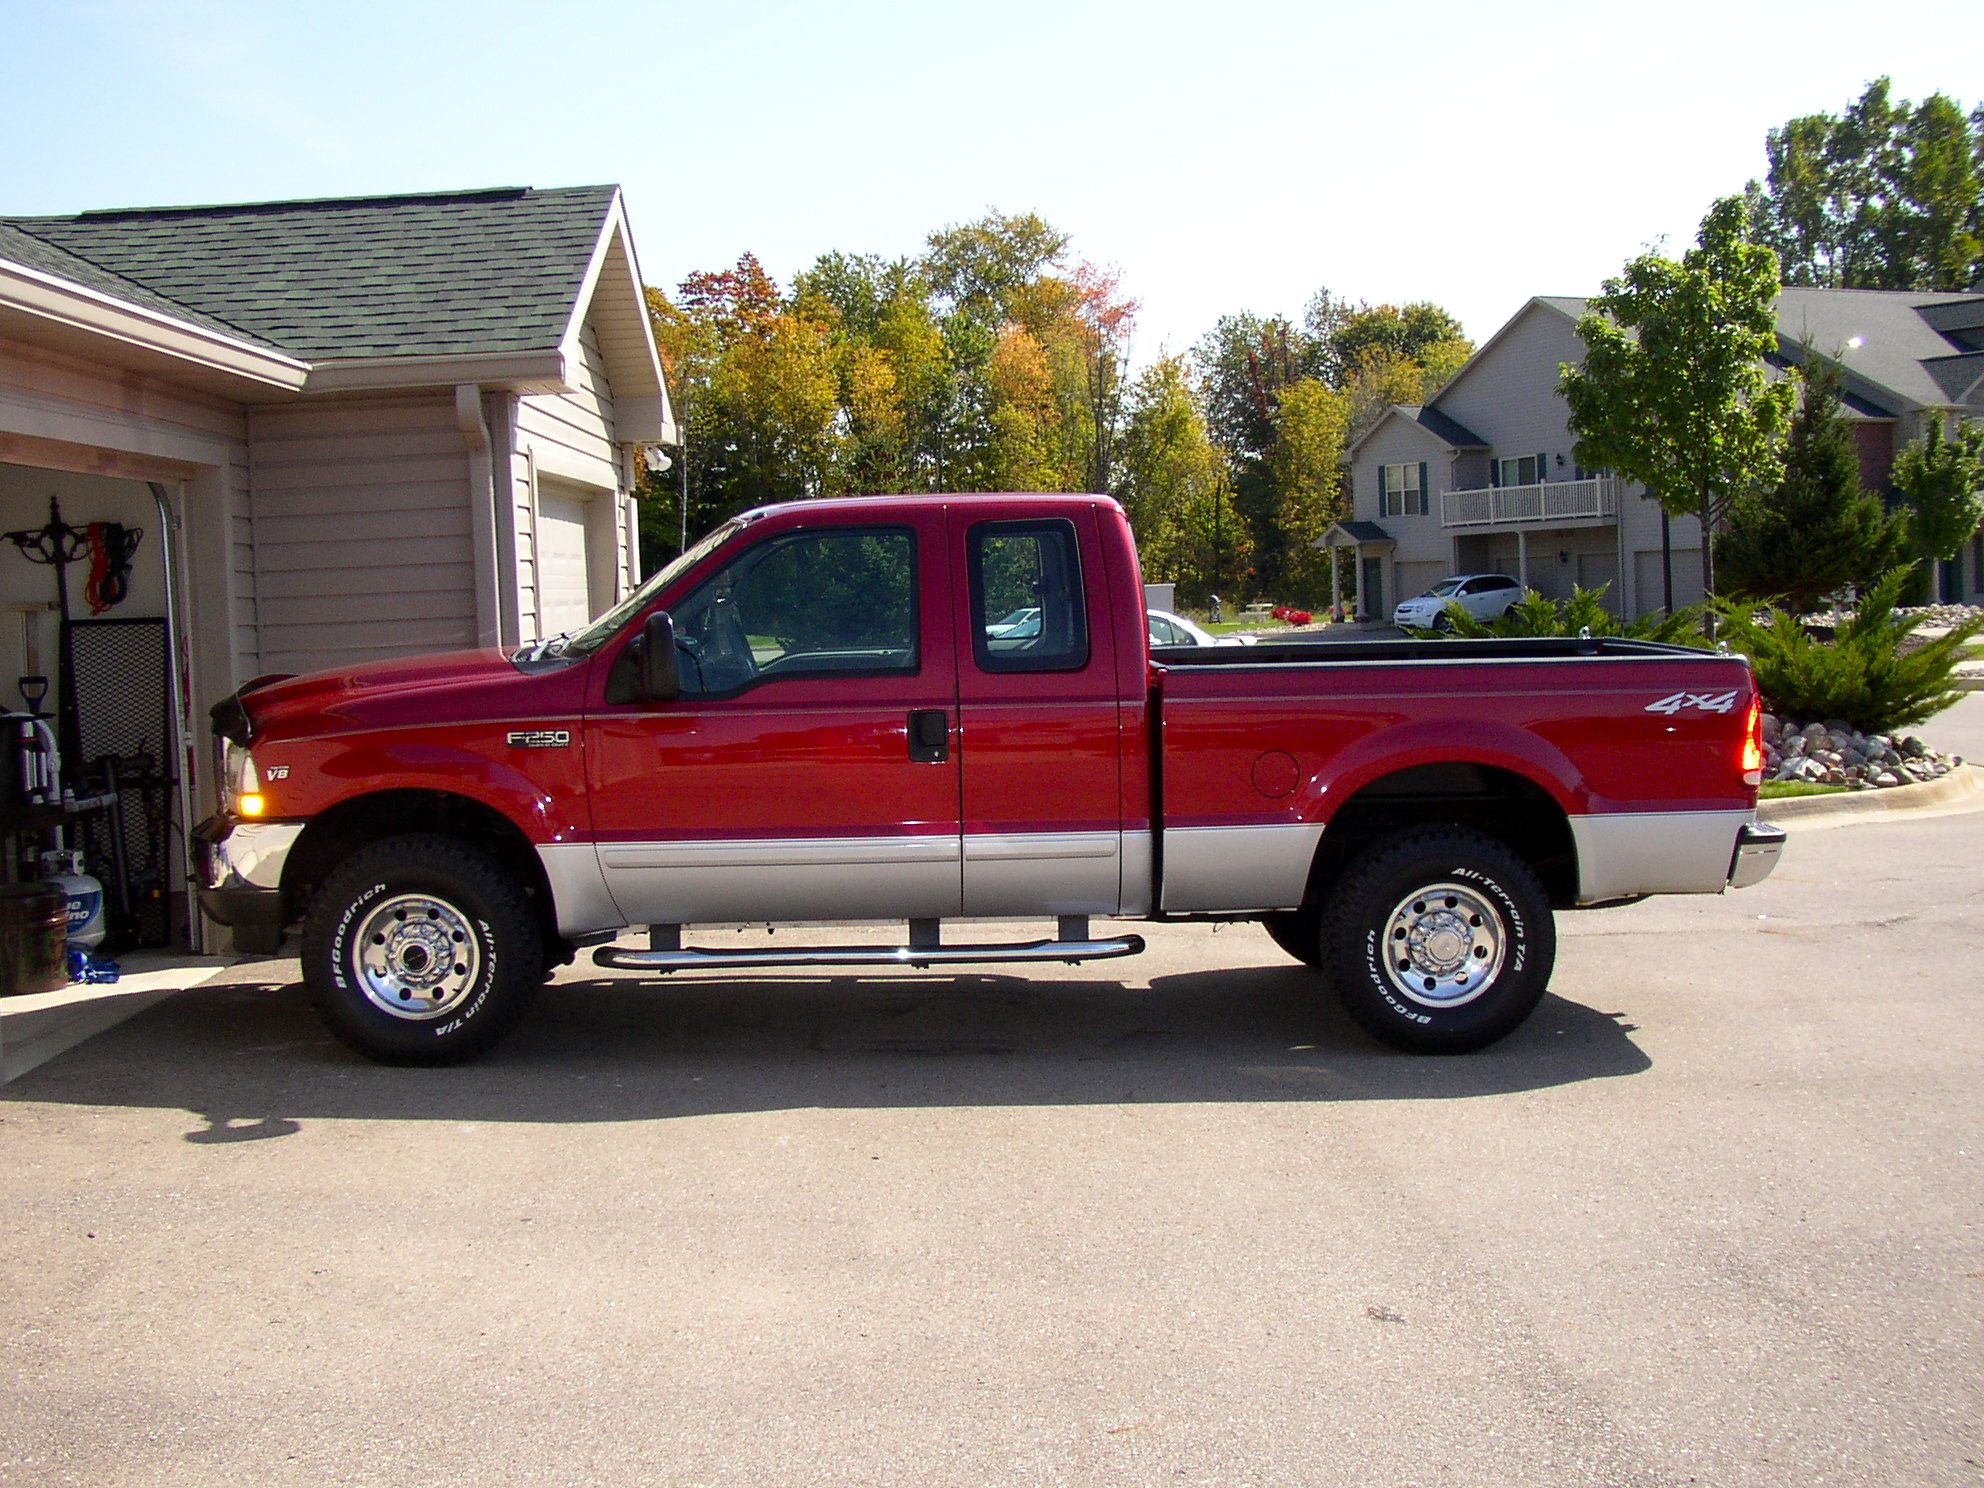 small resolution of  9 2002 f250 super duty 4x4 4 door crew deep red wine not two toned v 10 solid bought new at ford dealership on mercury near cunningham